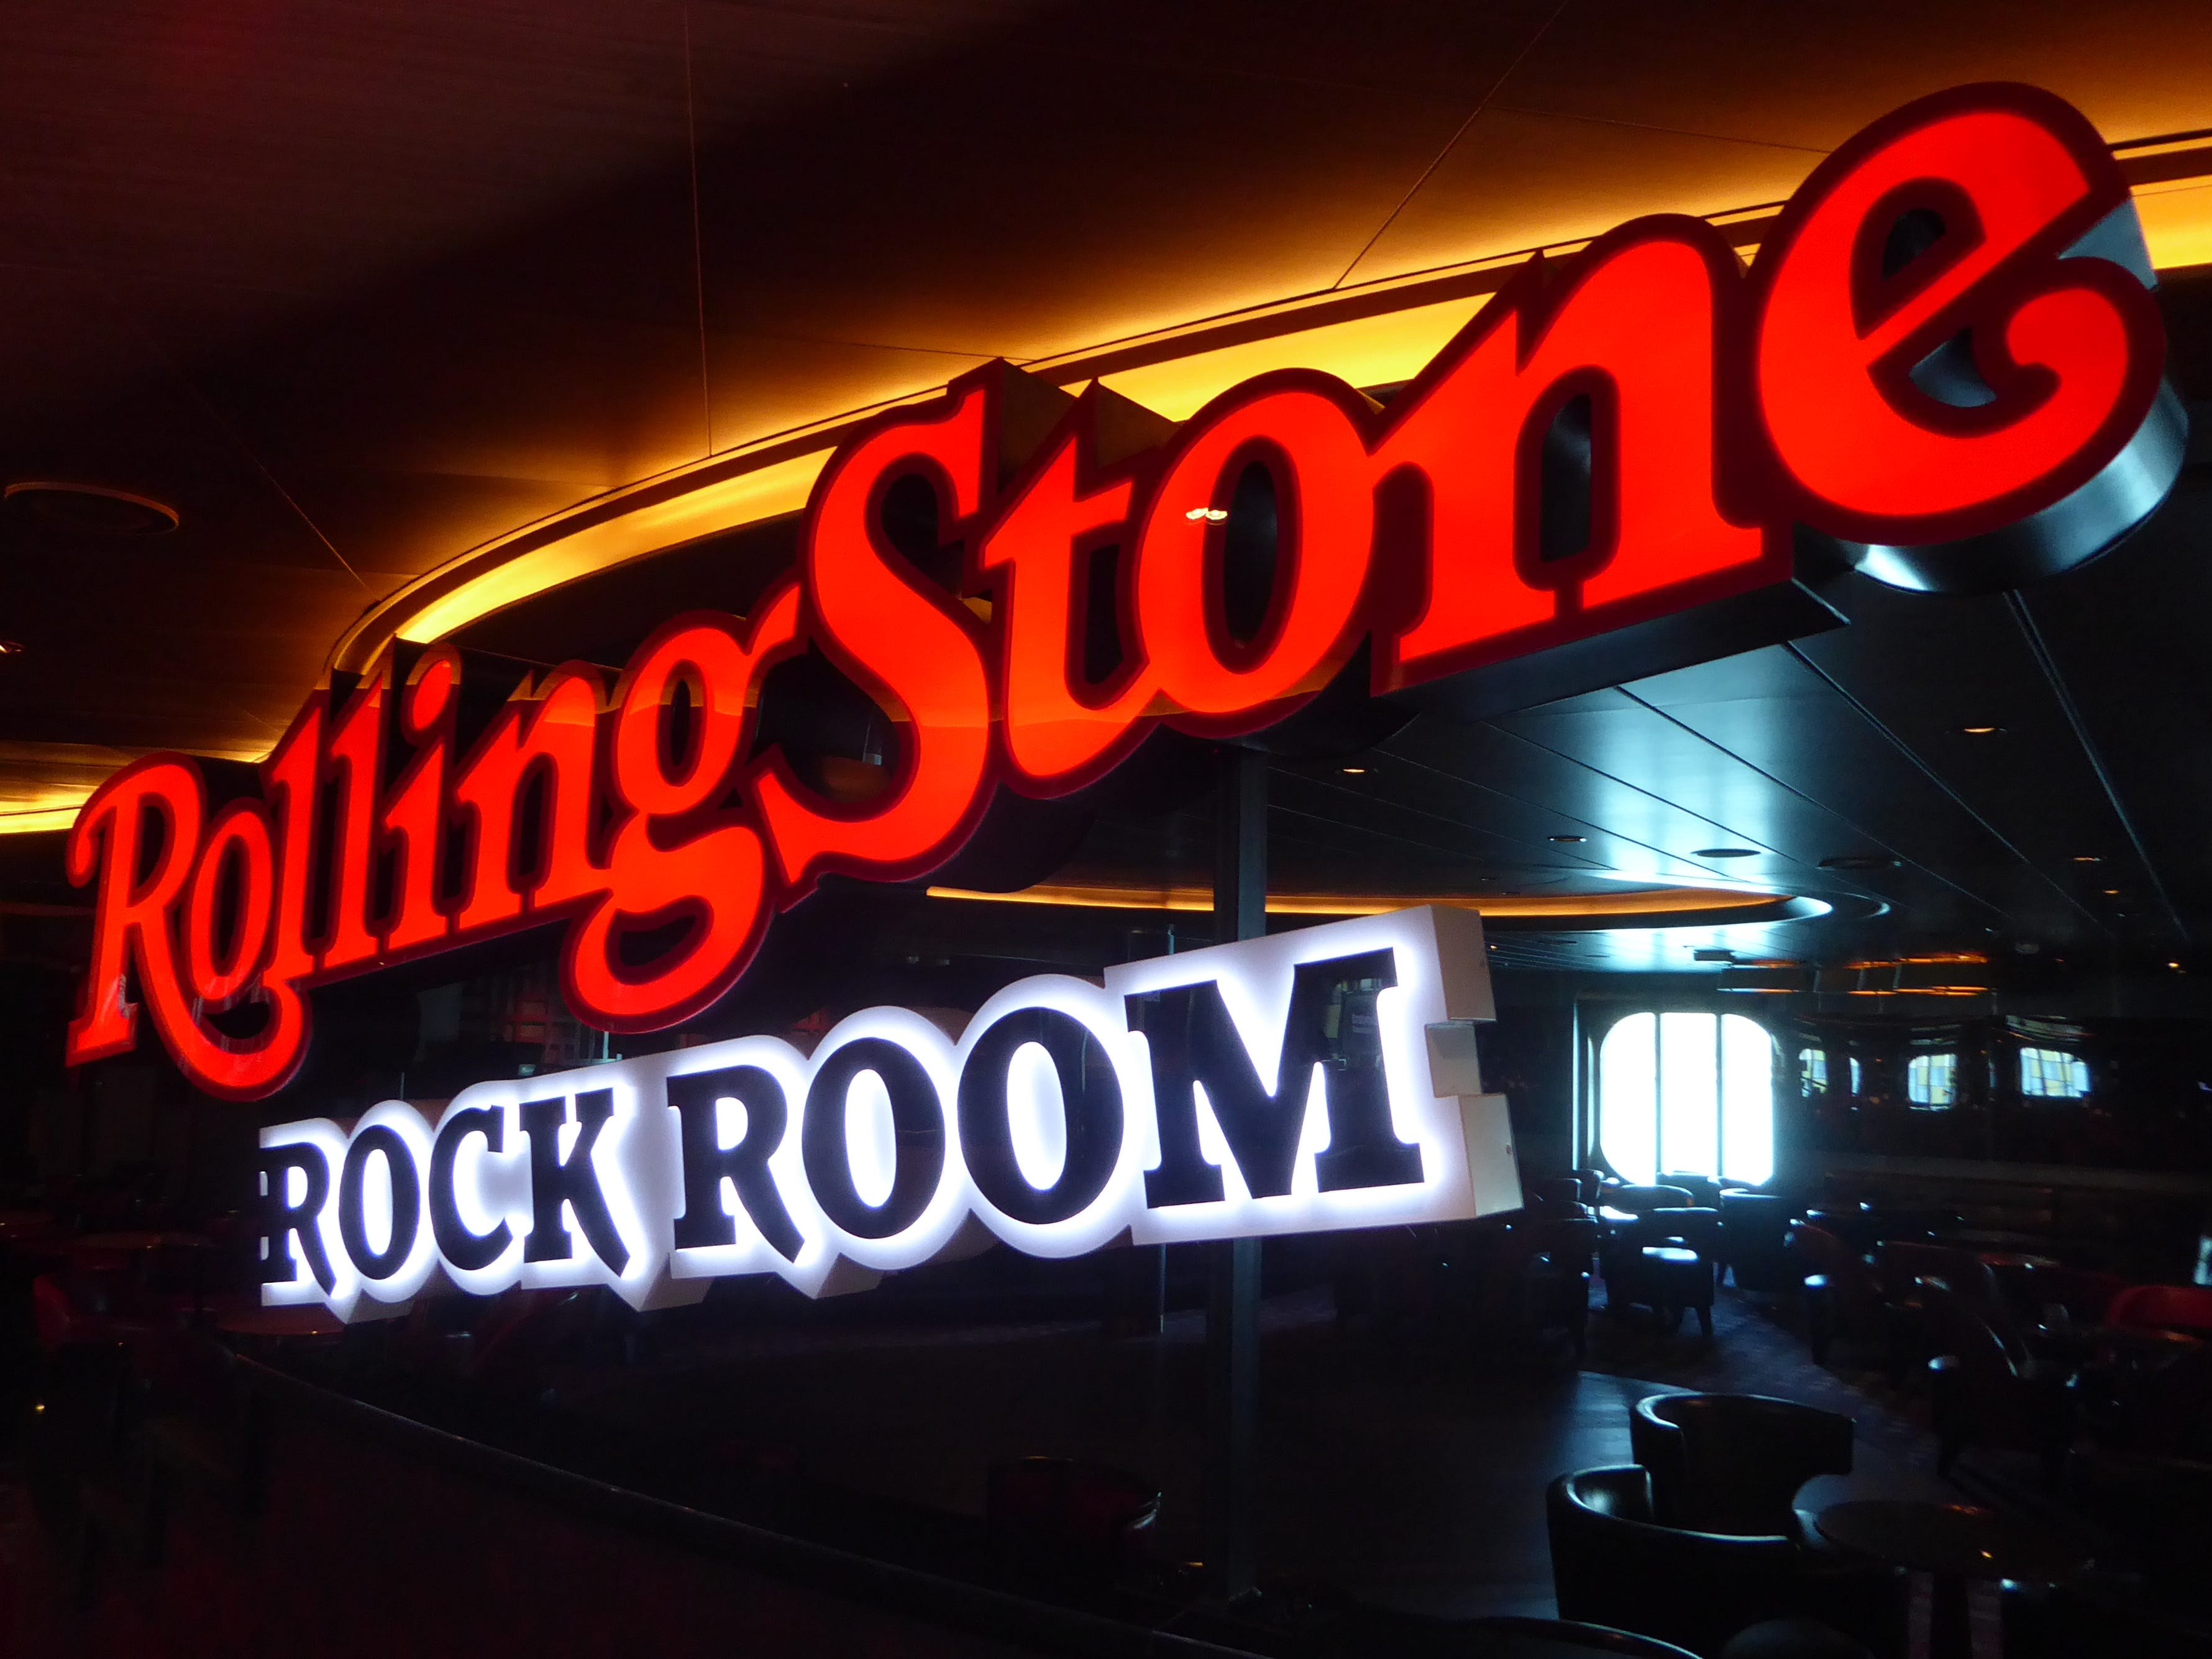 Located on starboard Deck 2, the 330-seat Rolling Stone Rock Room is exclusive to Nieuw Statendam.  On sister ship Koningsdam, this venue is set up for the Lincoln Center classical music performances.